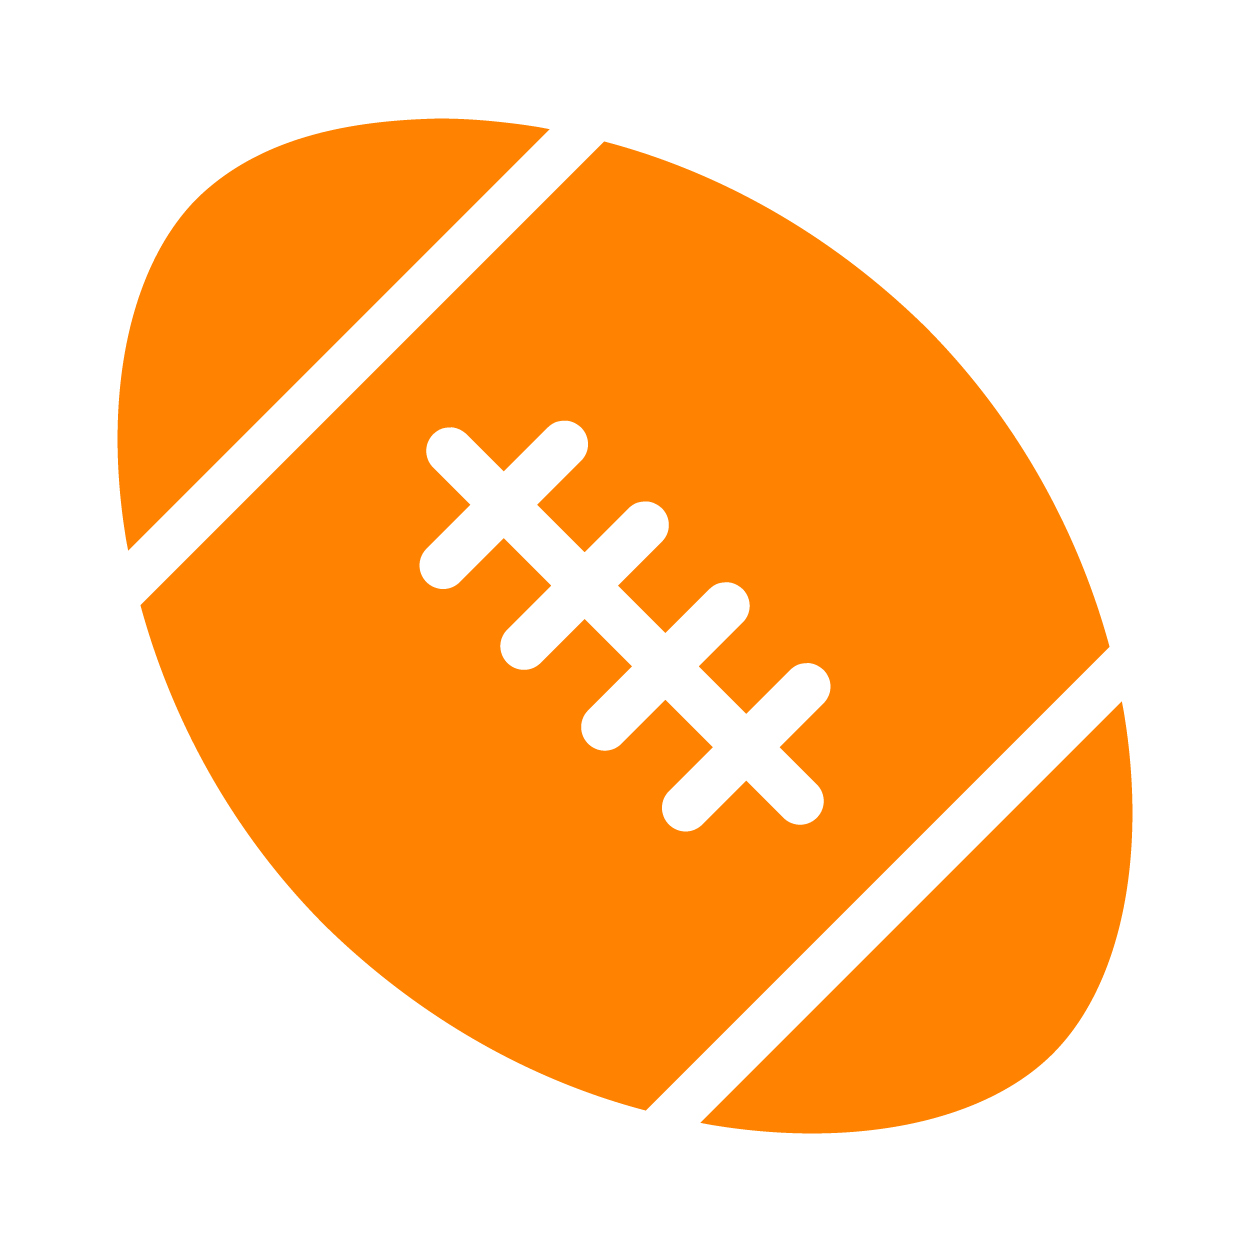 simple vector illustration of a football